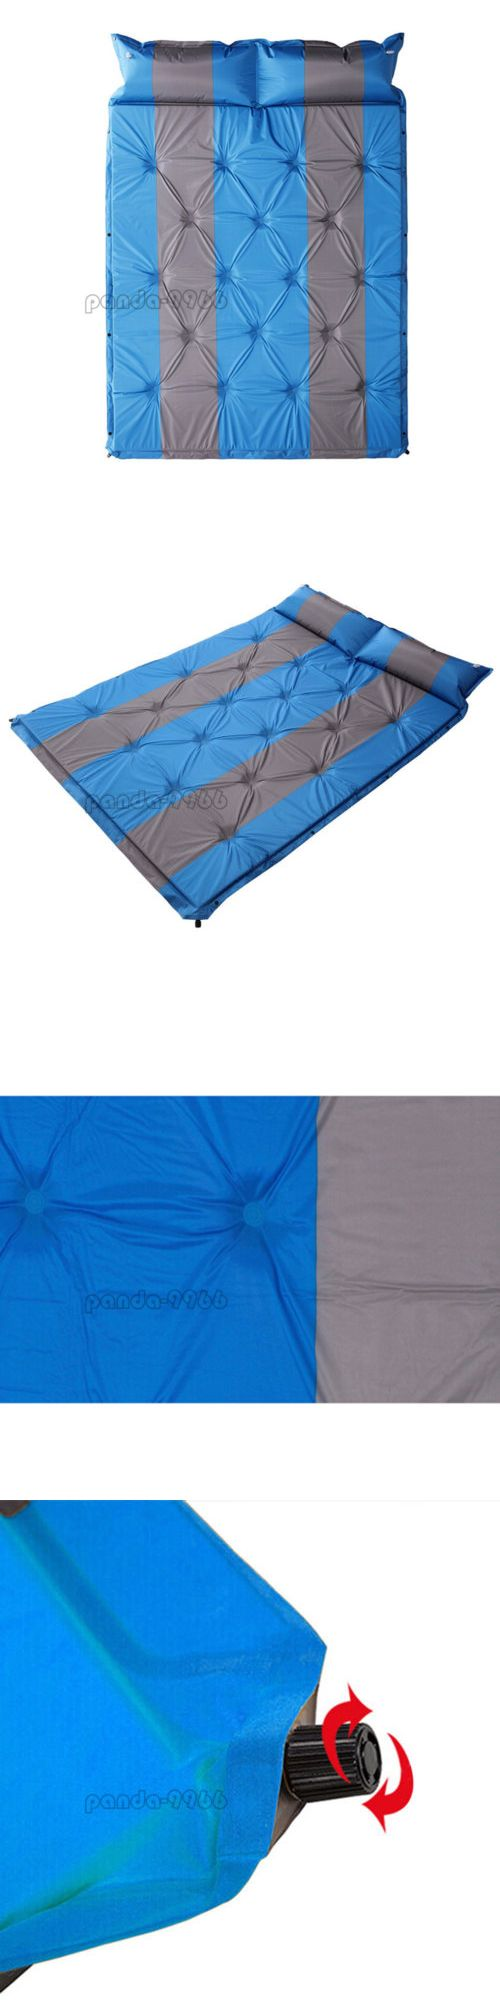 Mattresses and Pads 36114: Double 2 Person Self-Inflating Air Mattress  Sleeping Pad Outdoor